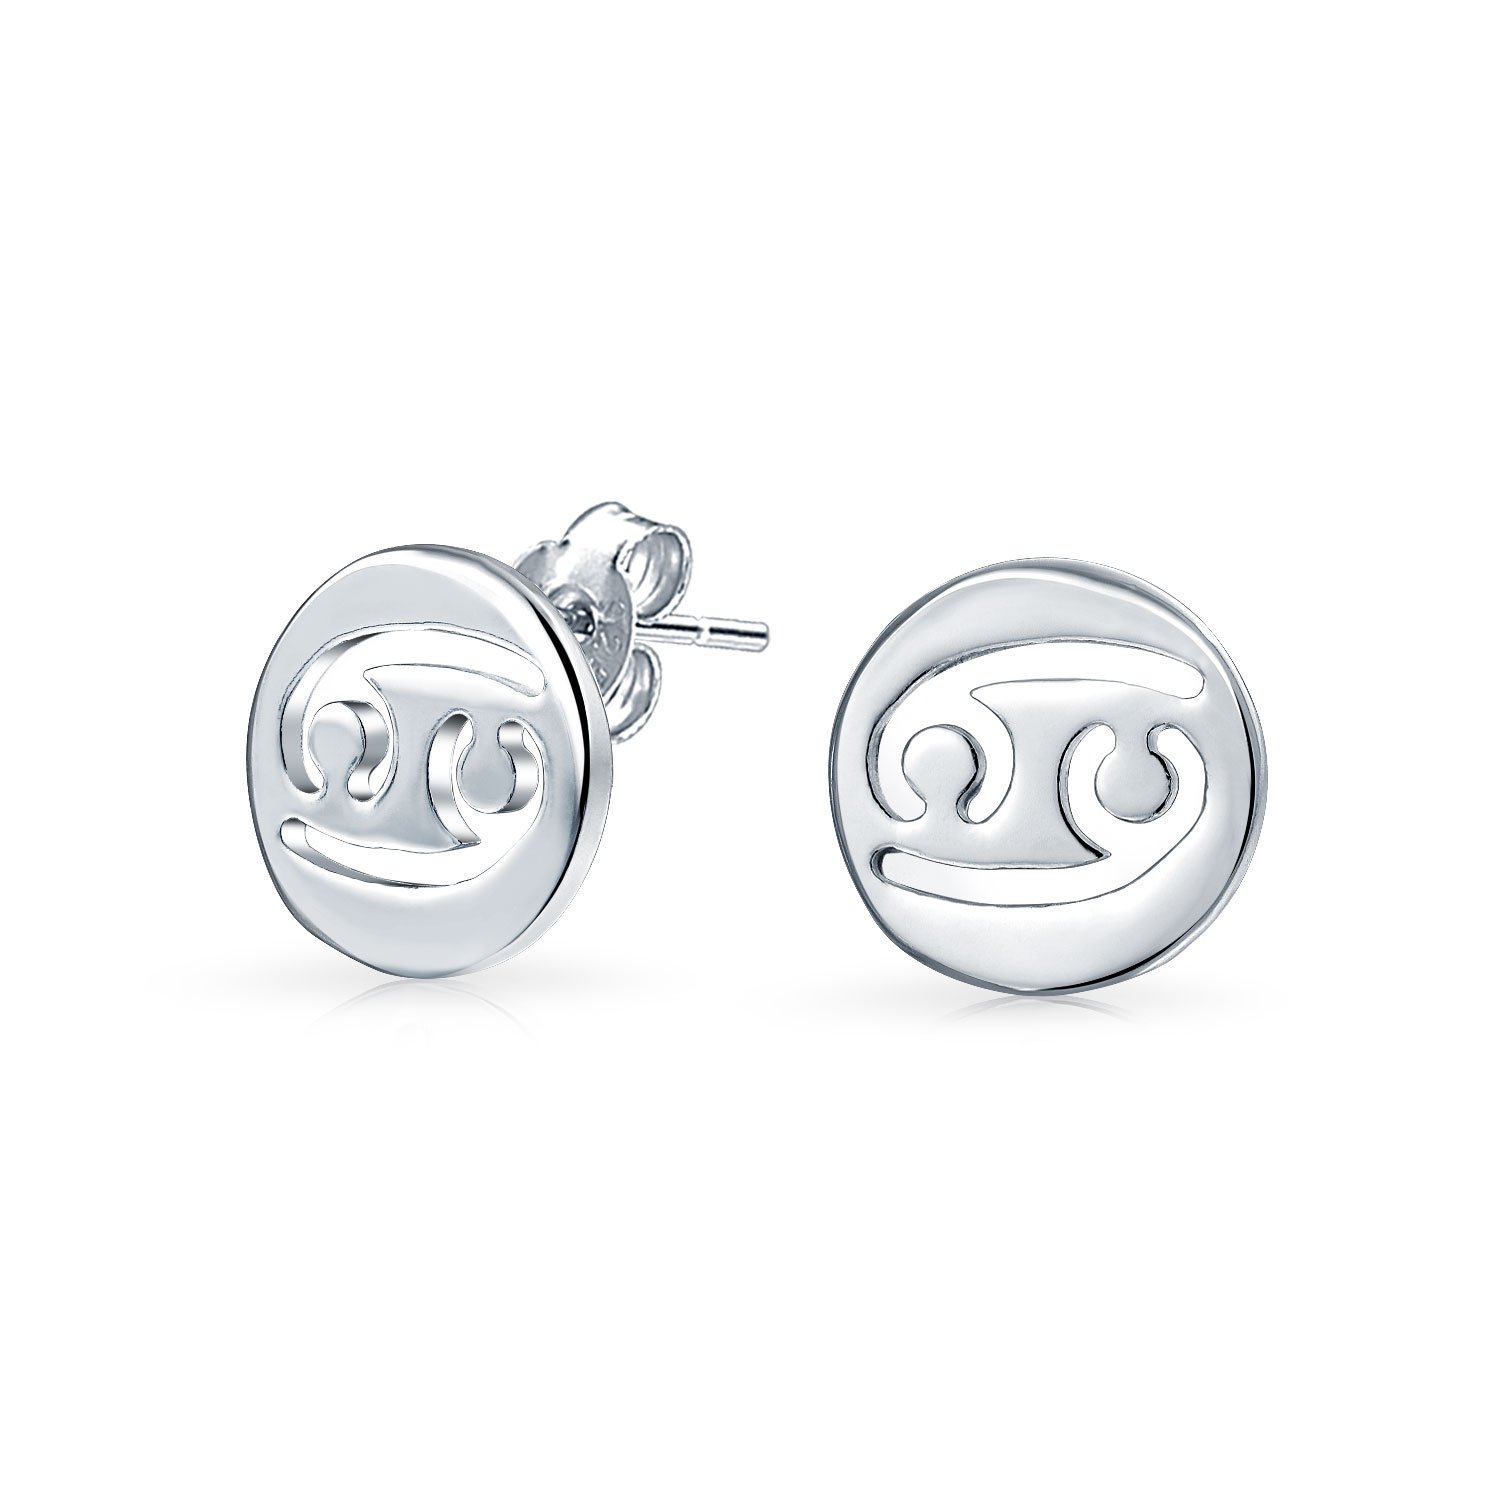 Bling Jewelry .925 Sterling Silver Cancer Zodiac Sign Round Disc Stud Earrings WJ-SWE1046S-08